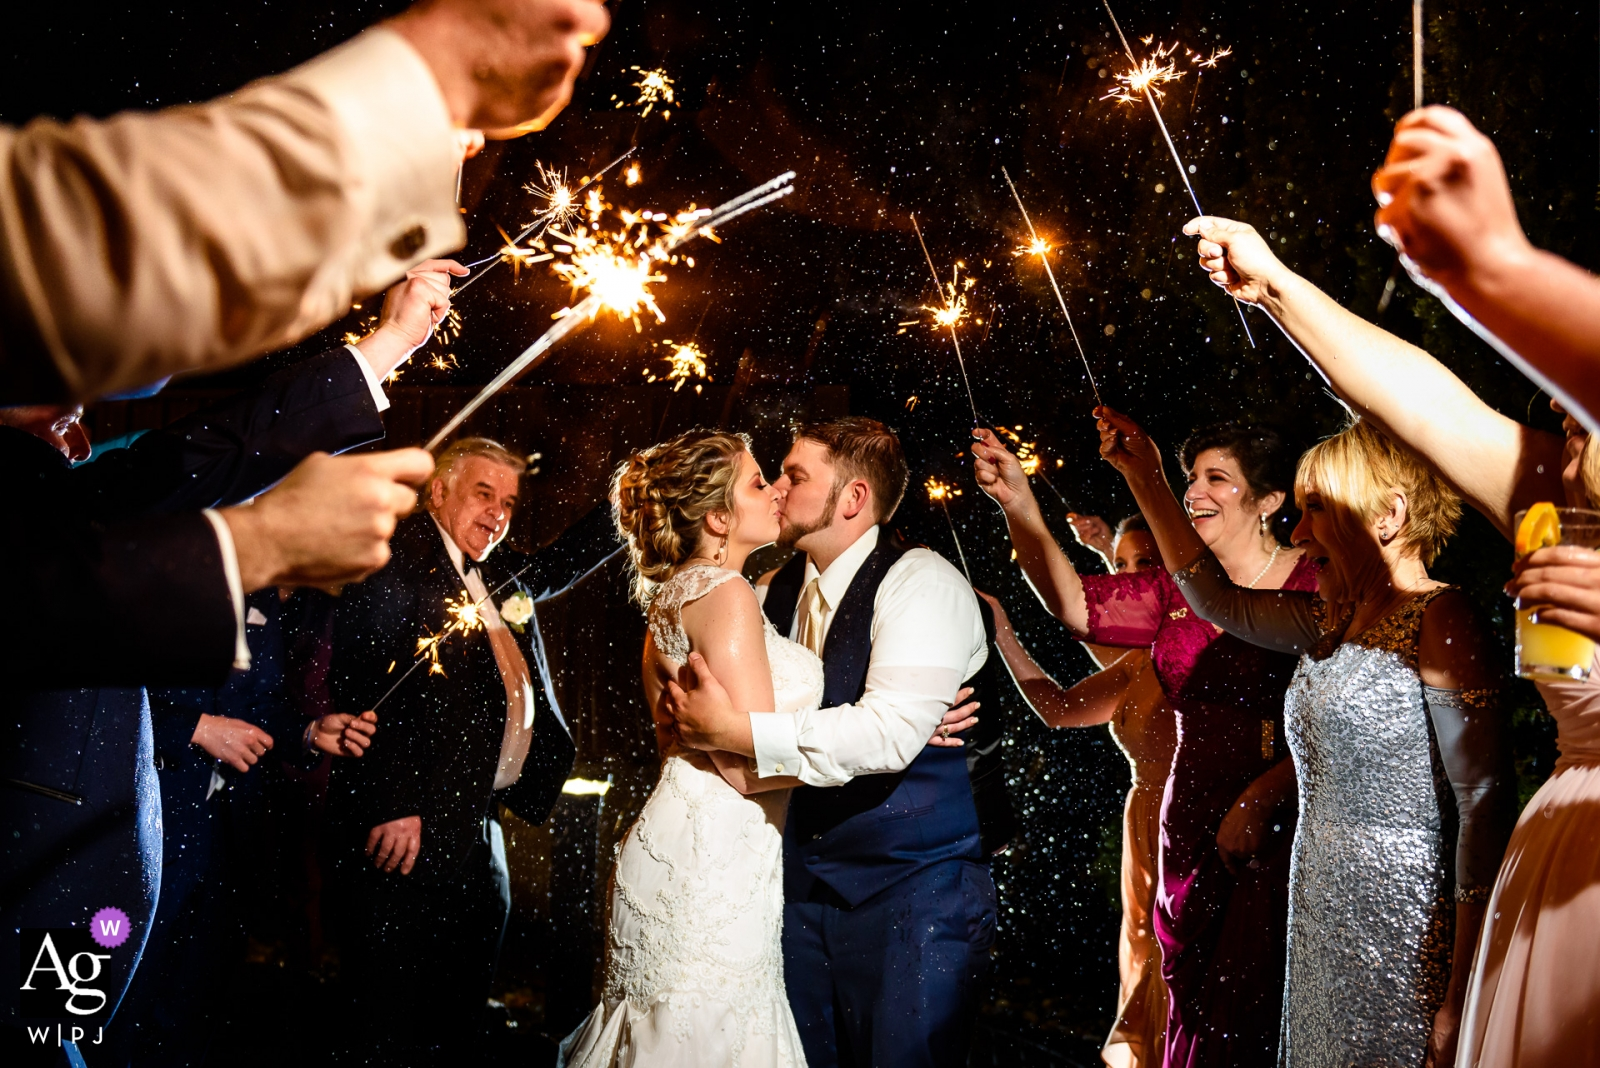 Rock Island Lake Club wedding photography - Rain did not stop this couples sparkler exit